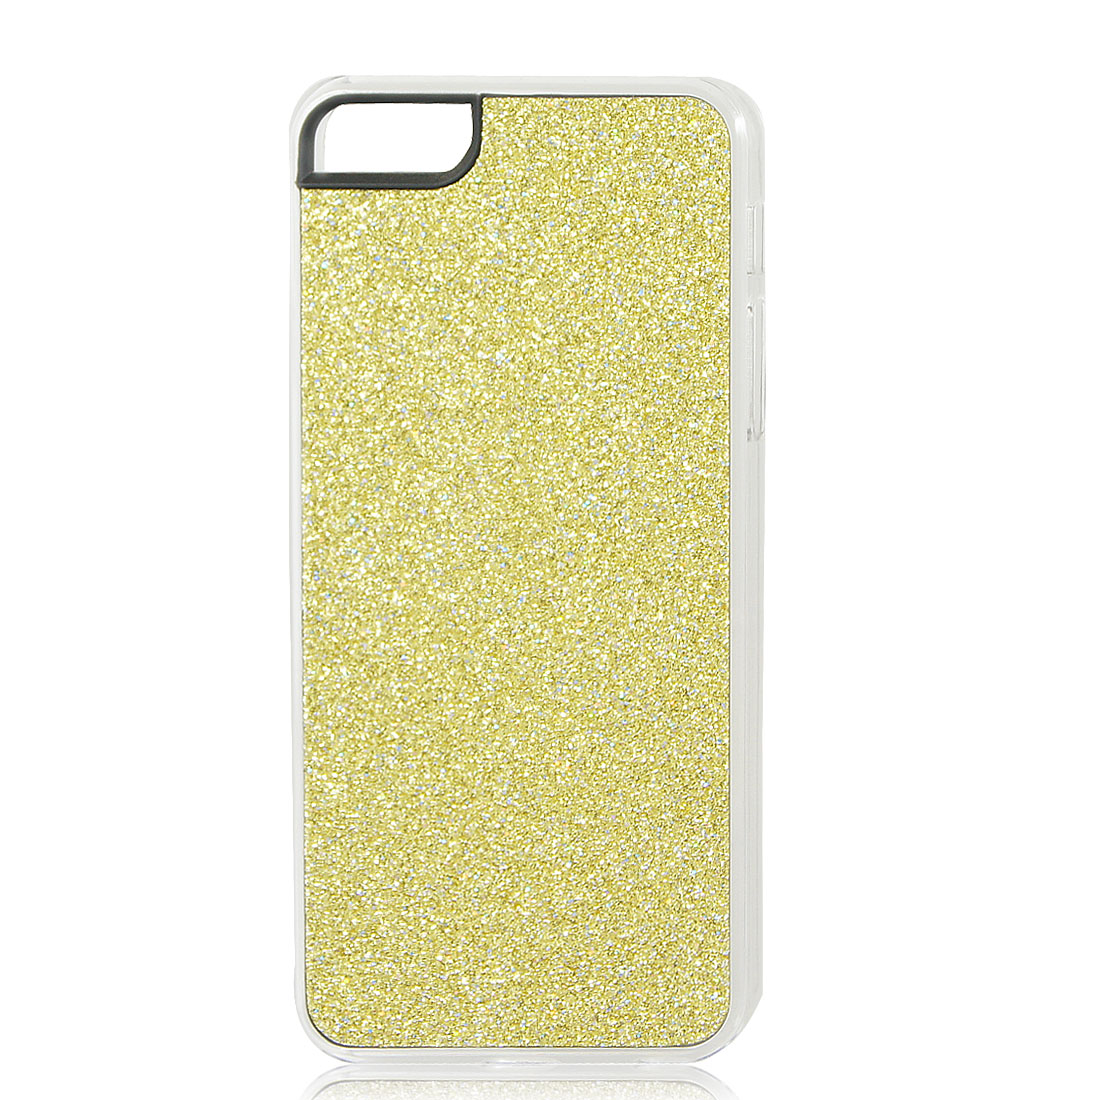 Gold Tone Glitter Glittery Sparkly Bling Hard Back Case Cover for iPhone 5 5G